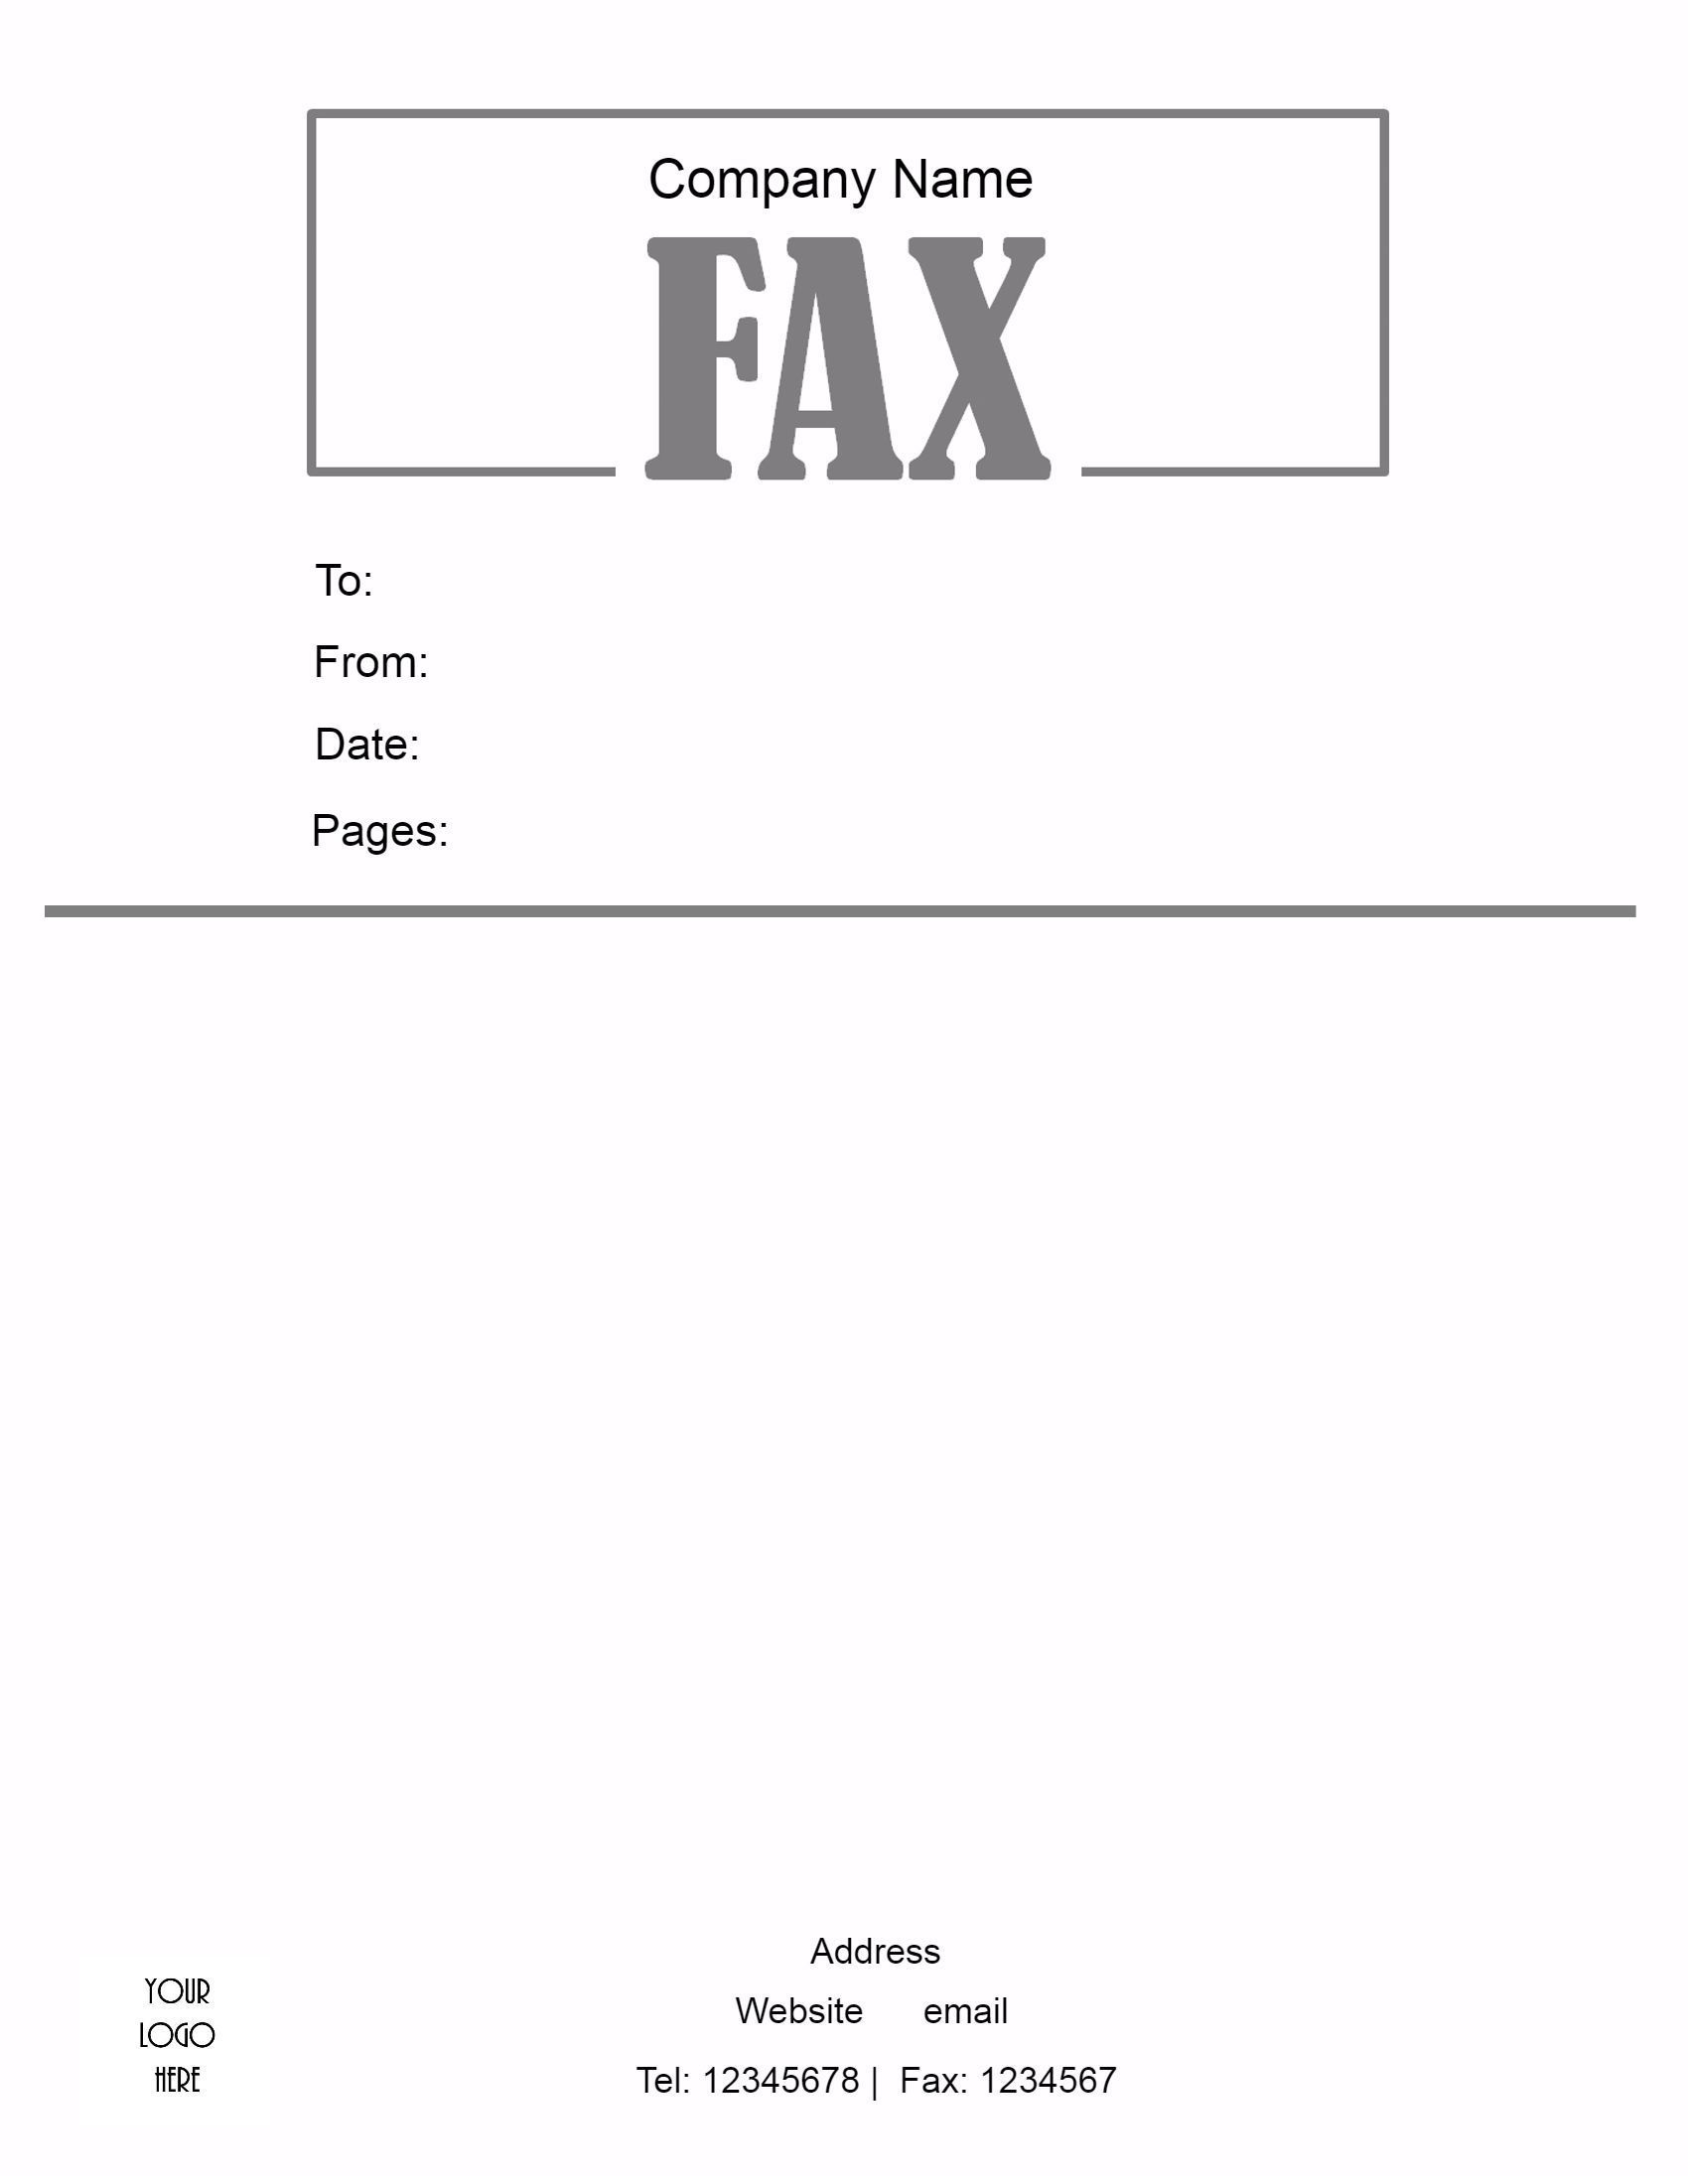 Printable Fax Cover Sheet With Confidentiality Statement Https